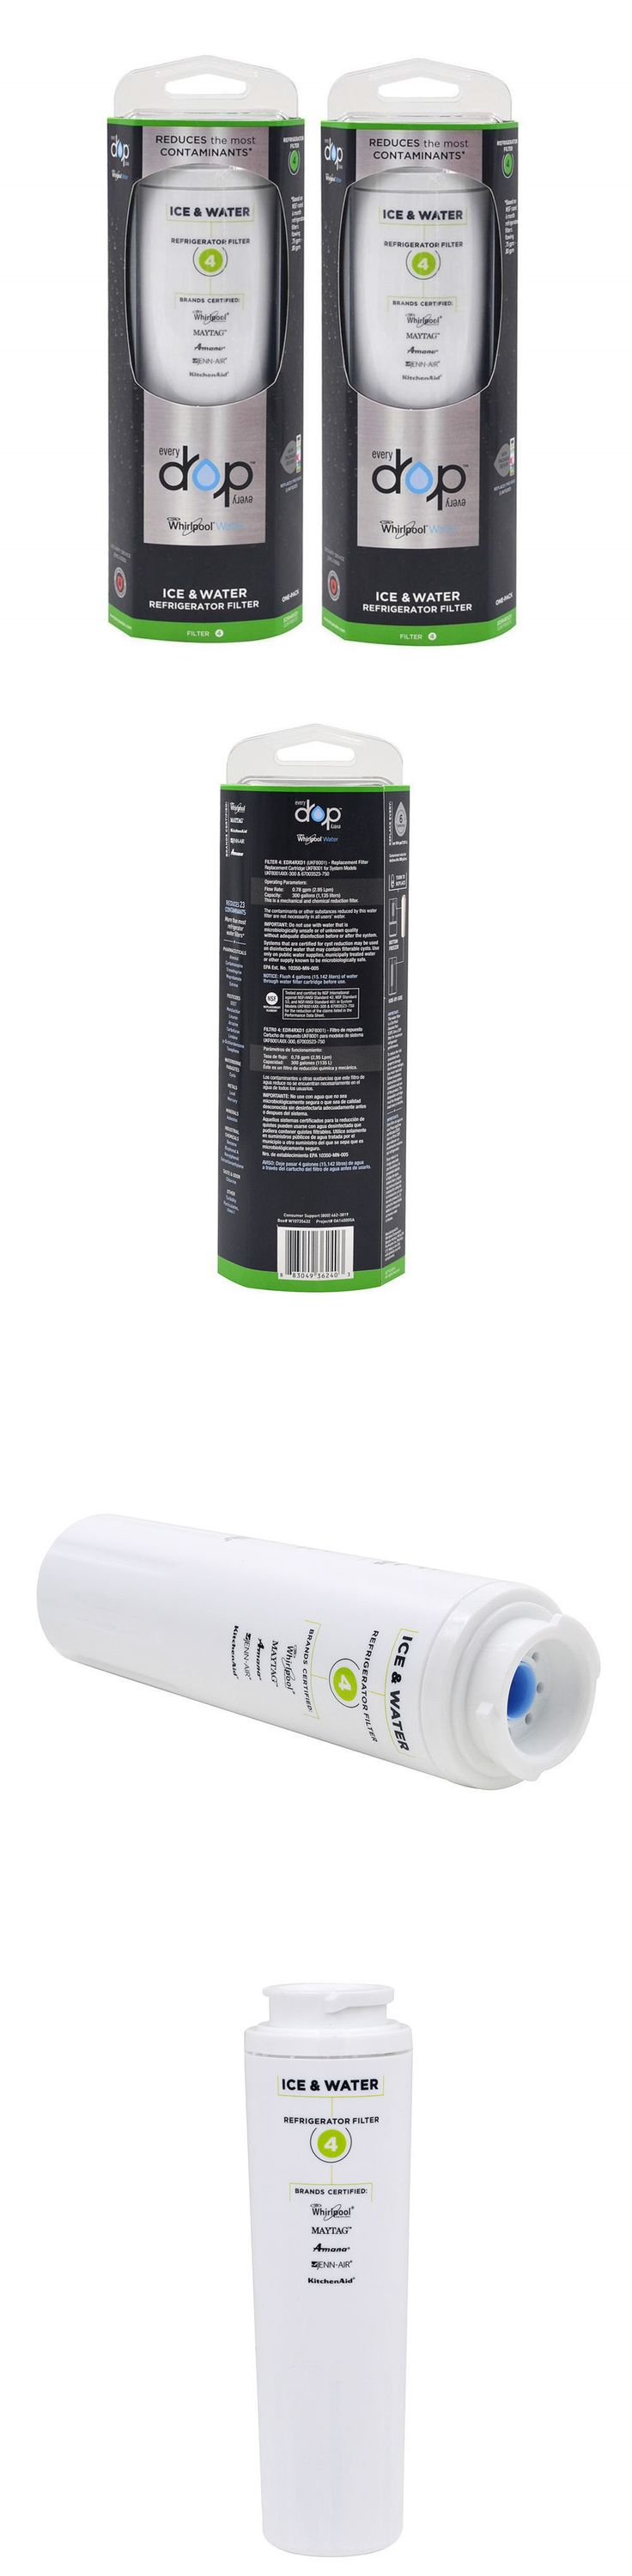 Water Filters 20684: 2 Pk Maytag Edr4rxd1 Ukf8001 Pur 4396395 Refrigerator Cyst Water Filter 4 -> BUY IT NOW ONLY: $35.77 on eBay!